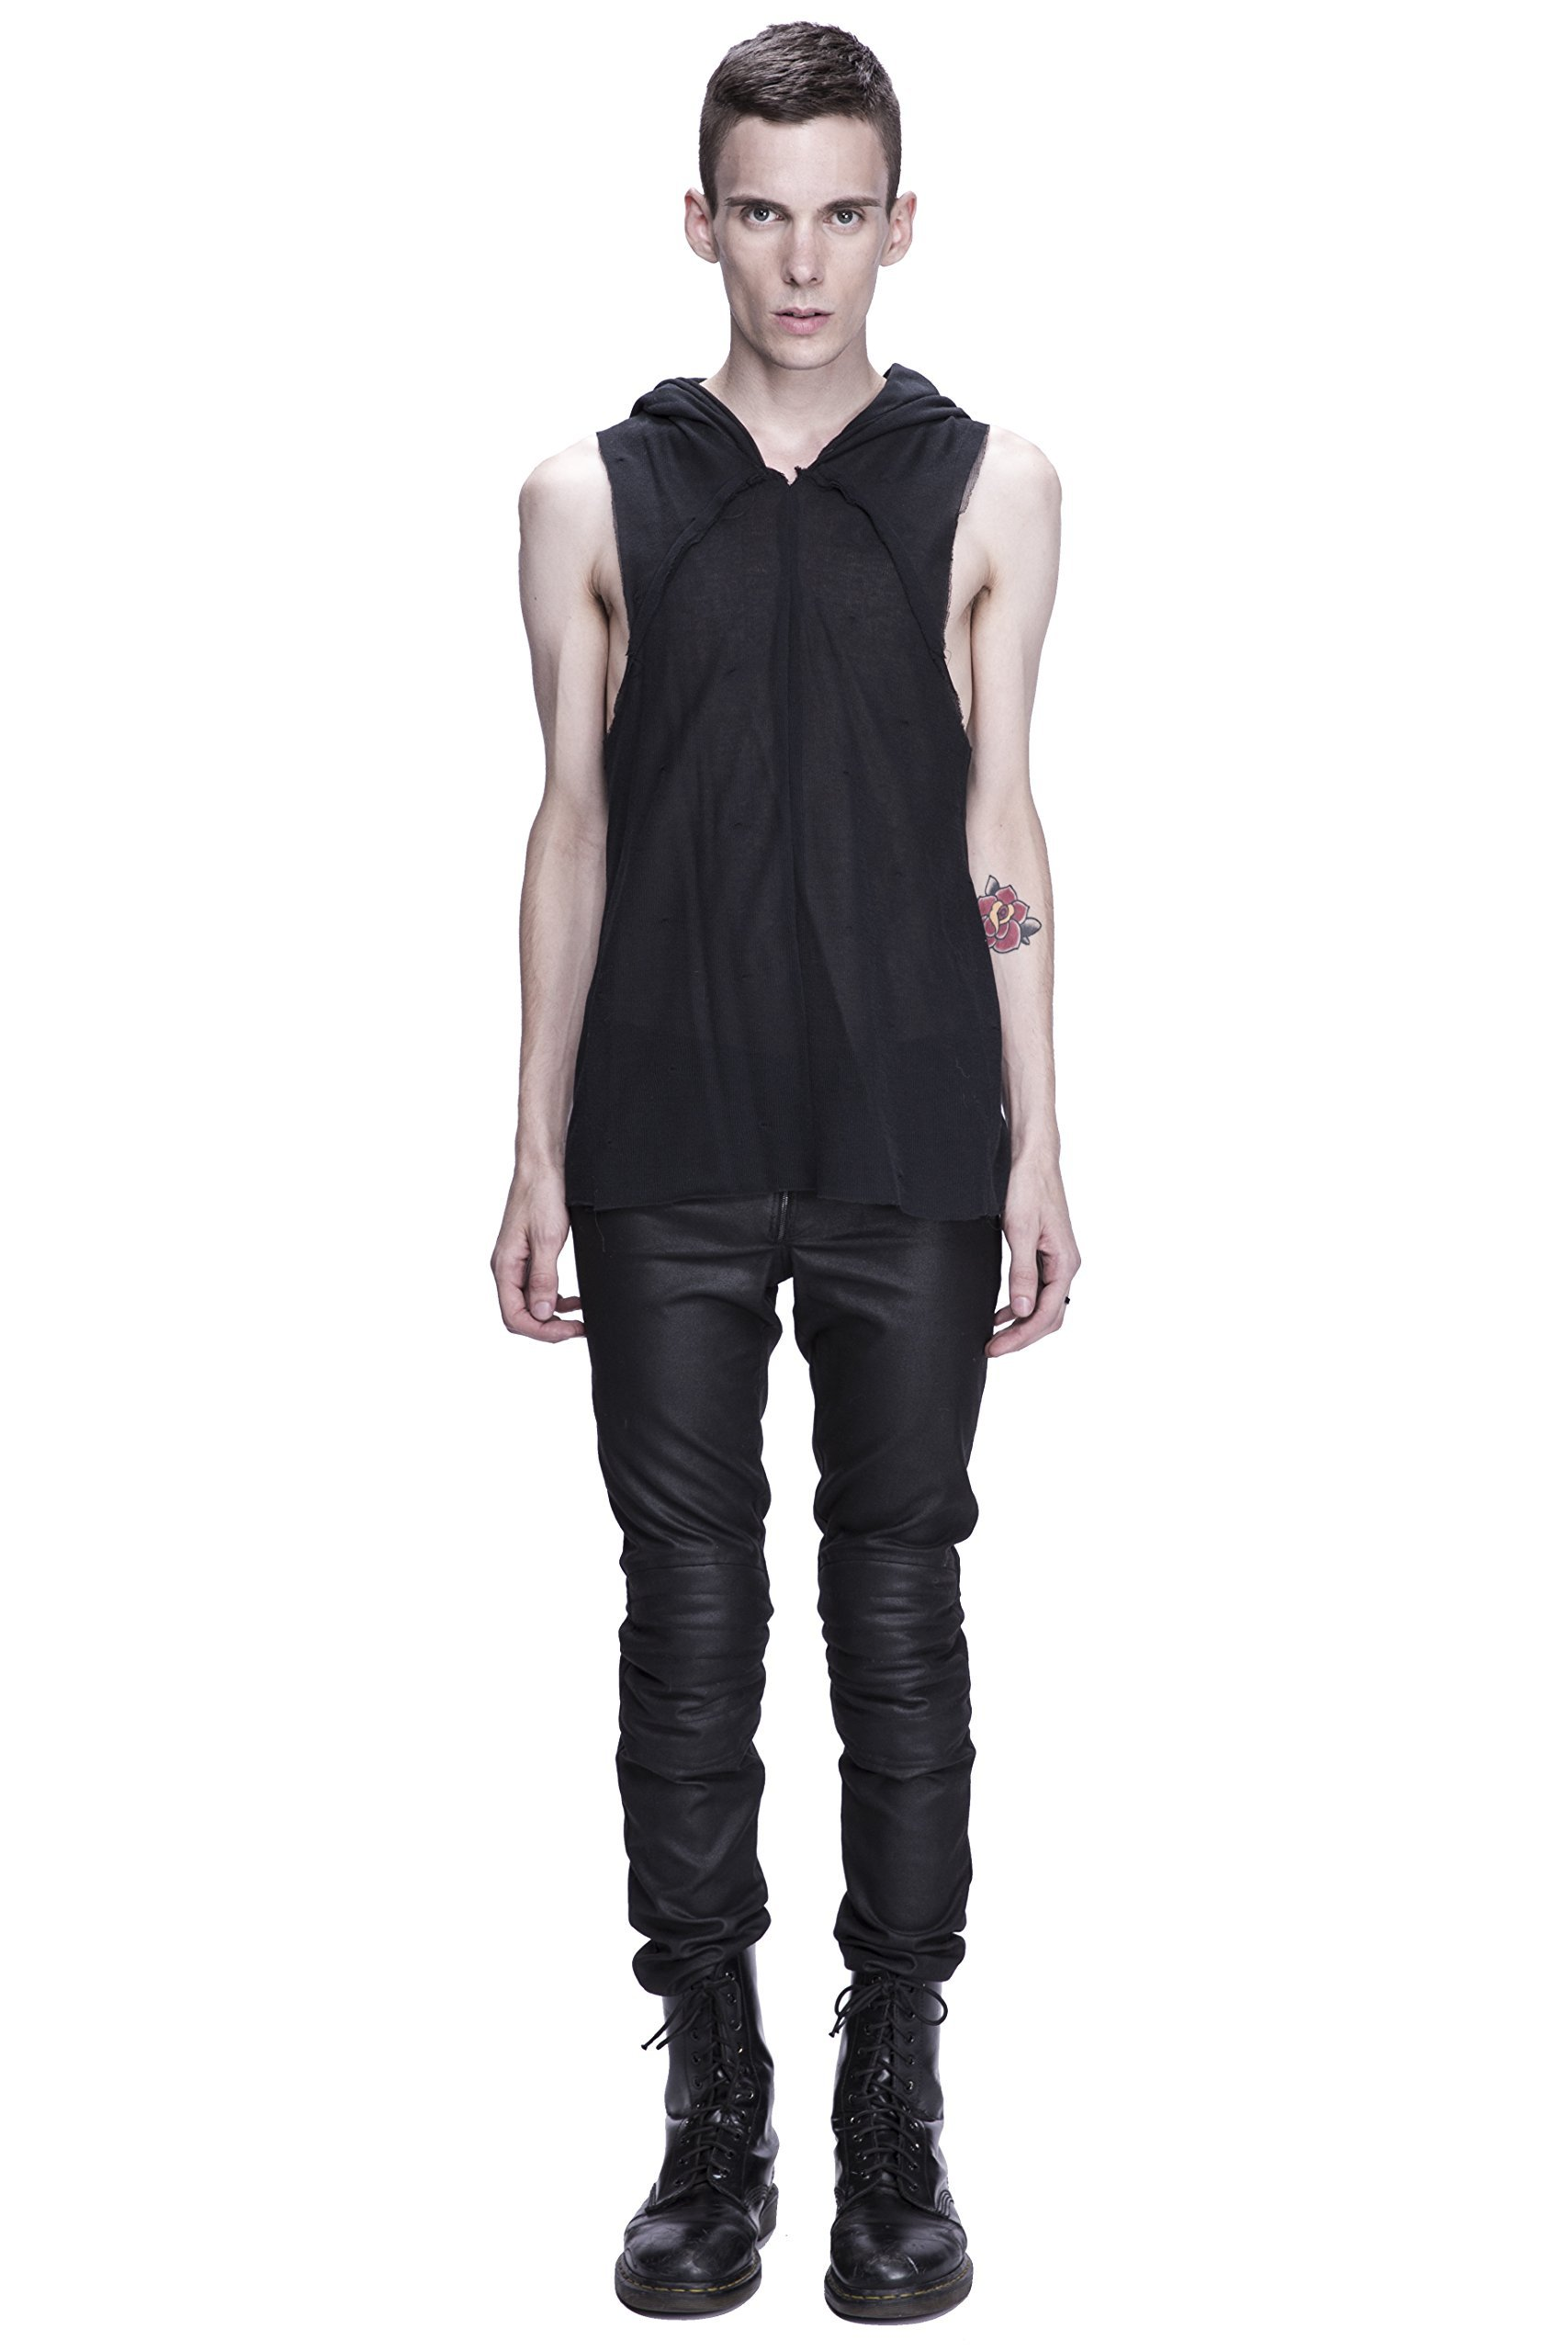 Unisex Dual Layer Draped Hooded Tank Top